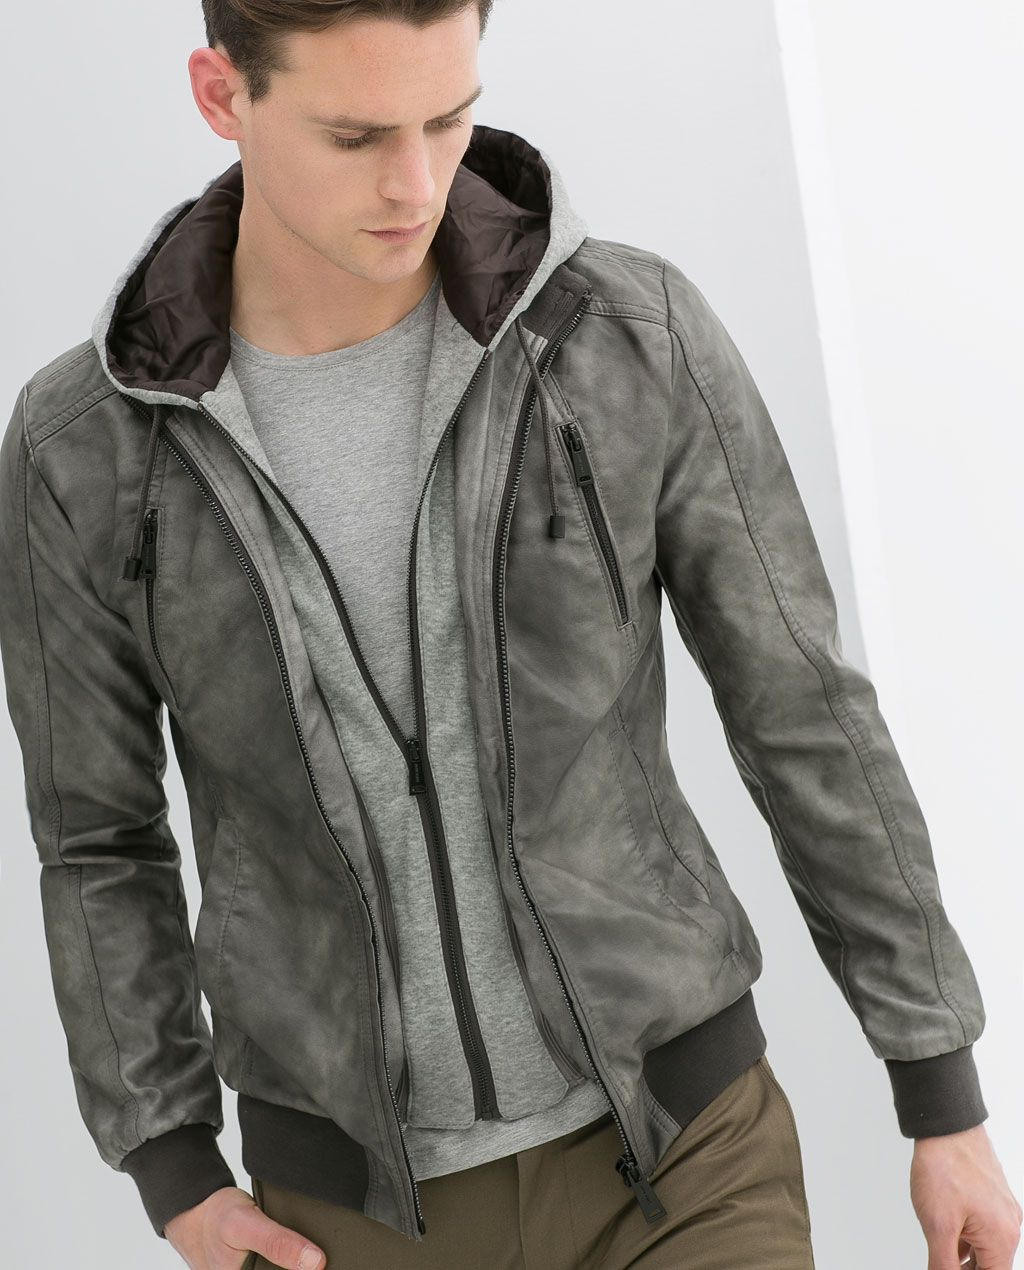 ZARA SALE HOODED FAUX LEATHER JACKET 299 passion for